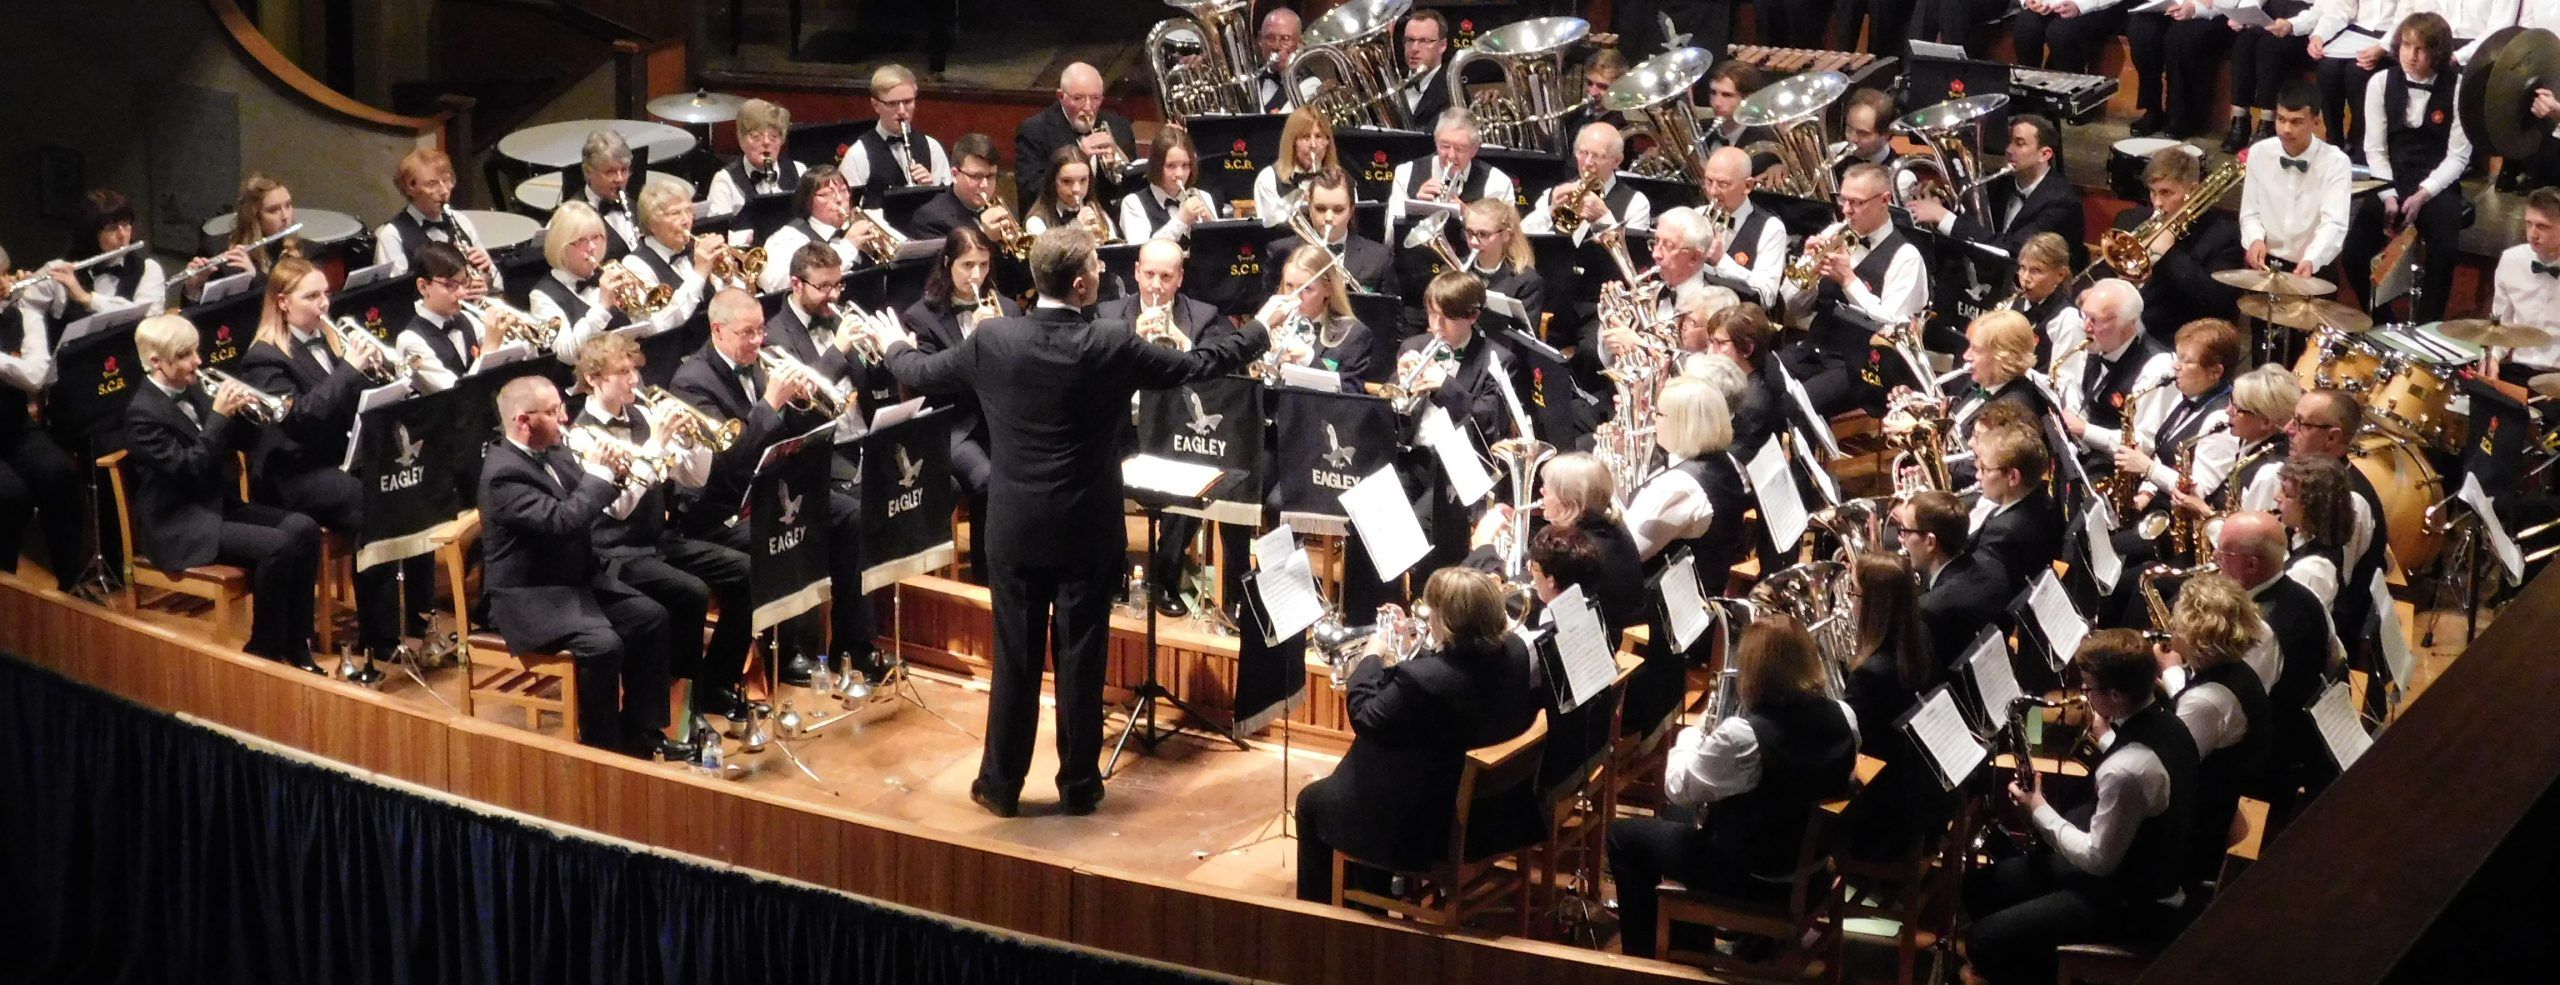 Header Image - Eagley Brass Band